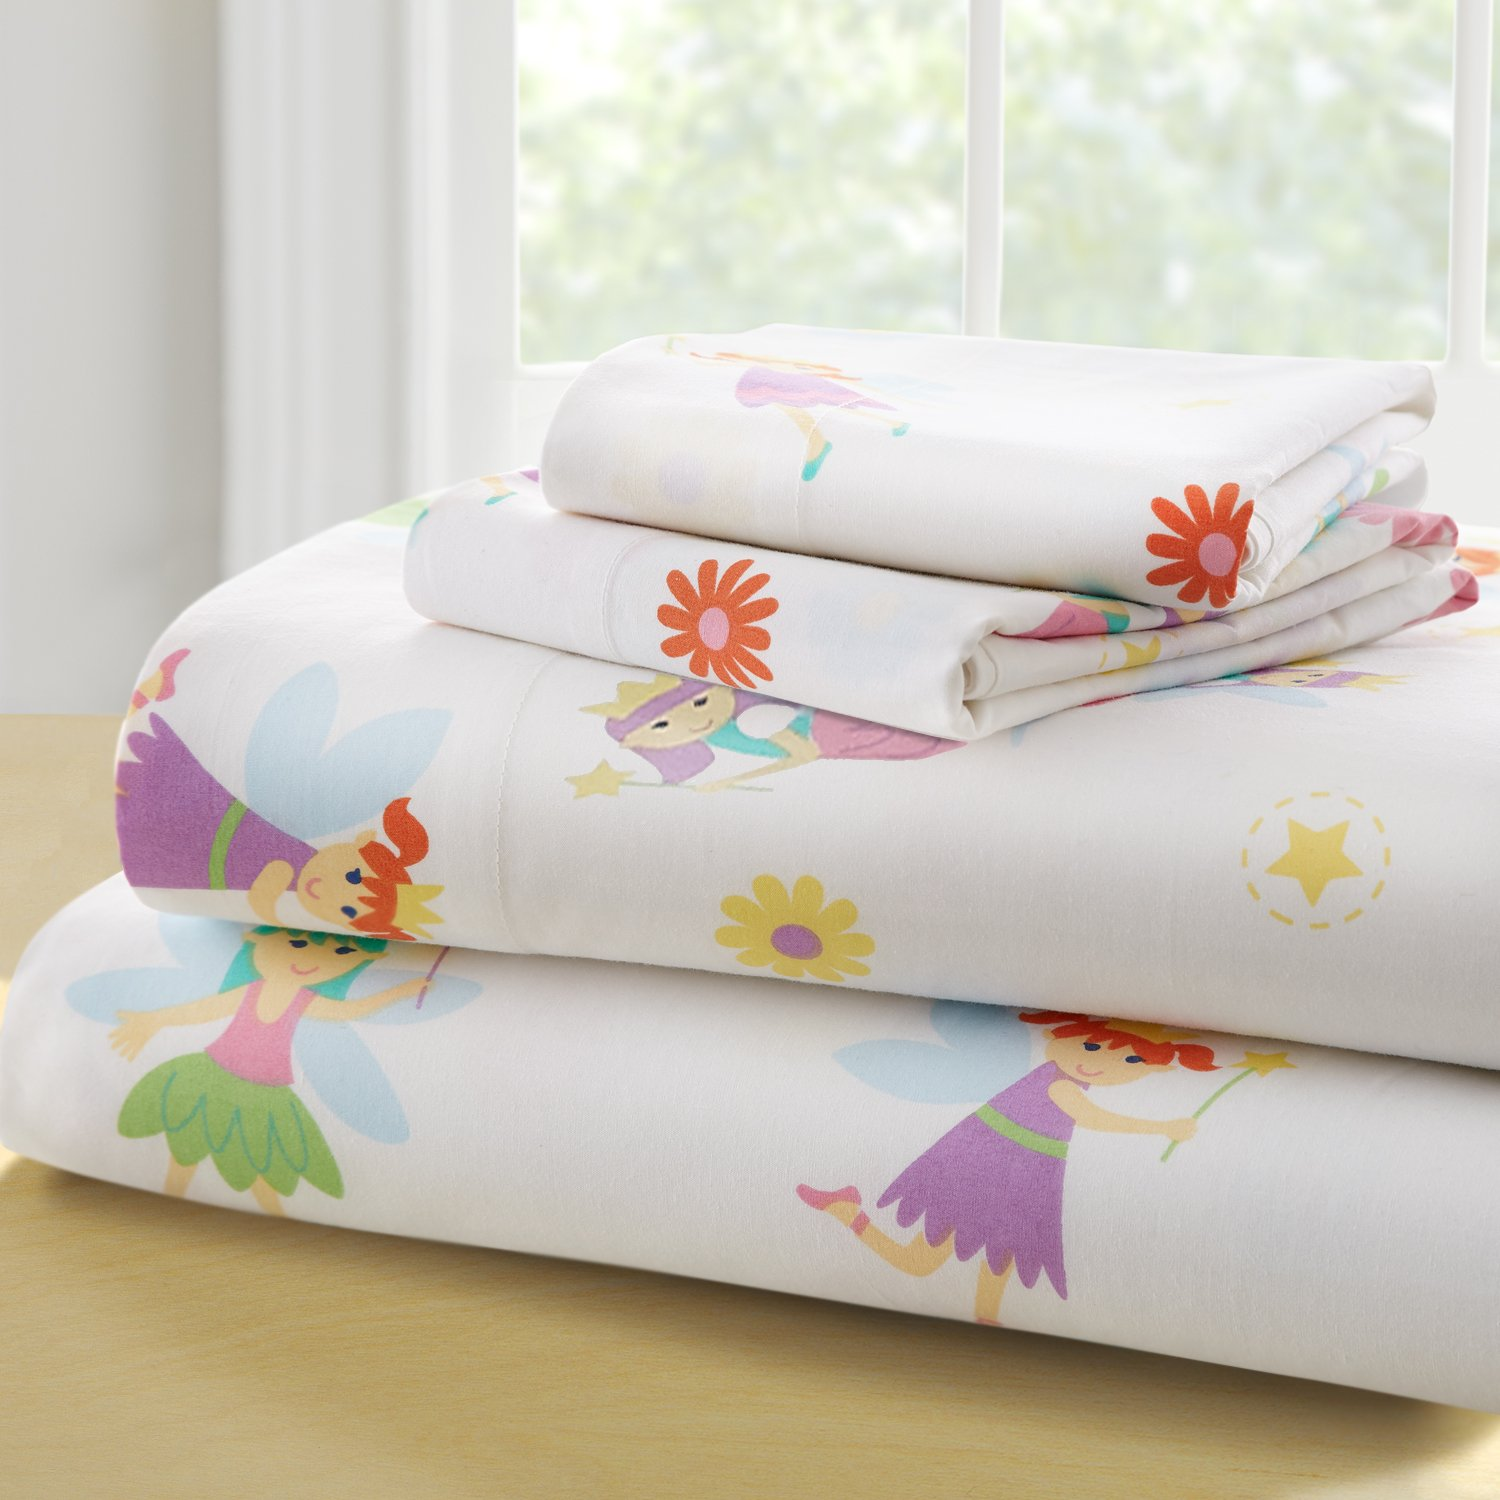 Wildkin Kids 100% Cotton Full Sheet Set for Boys and Girls, Cotton Bedding Set Includes Top Sheet, Fitted Sheet, and Two Standard Pillow Cases, Olive Kids, (Fairy Princess)